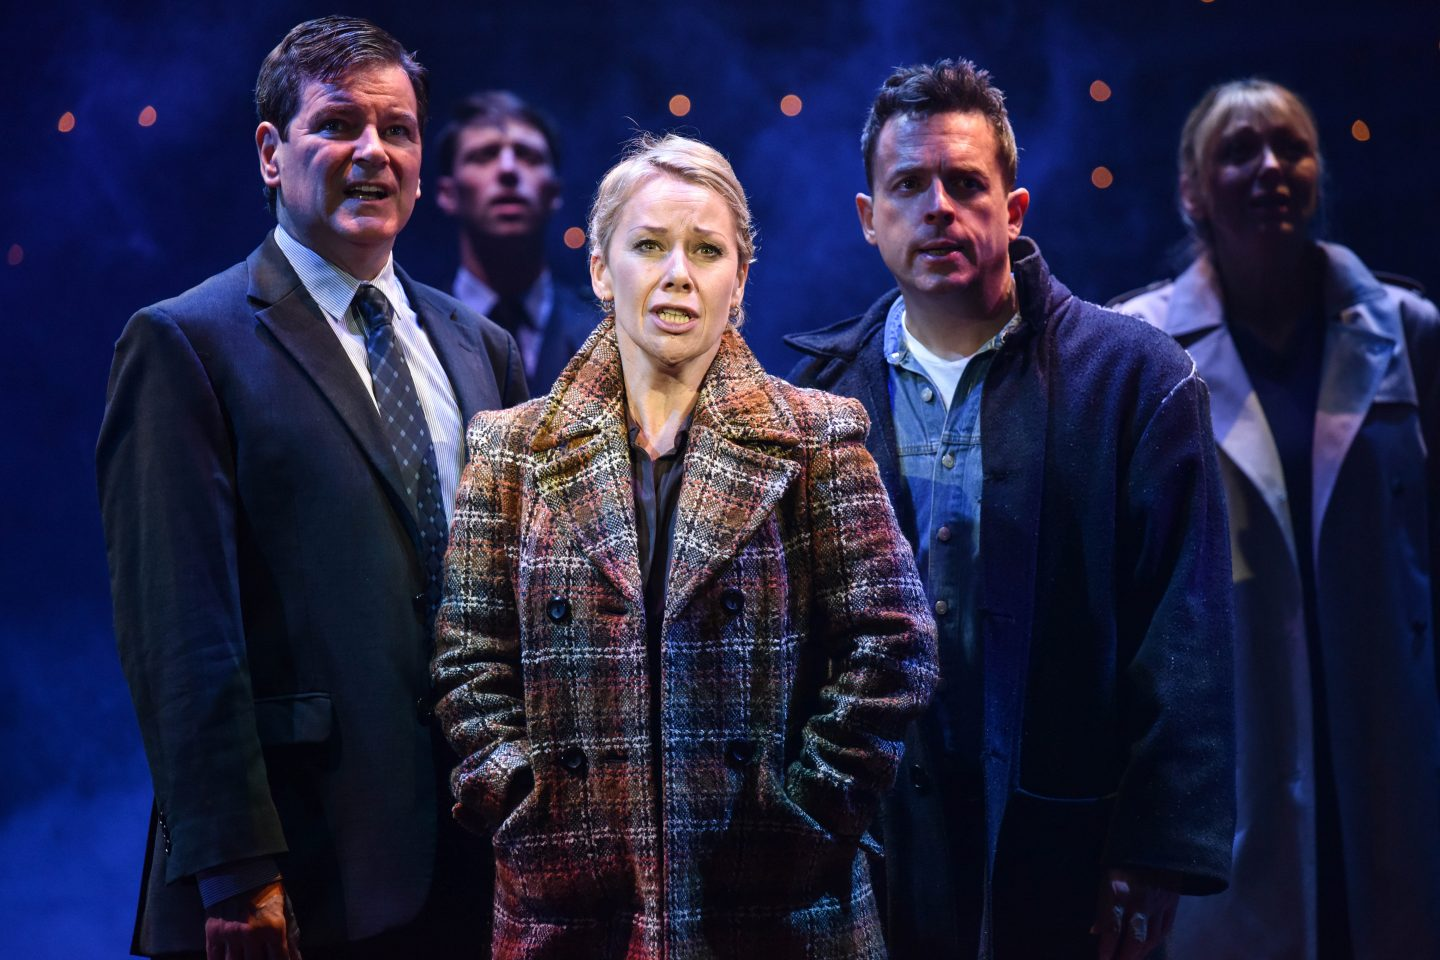 My first trip to Blood Brothers, New Theatre Oxford